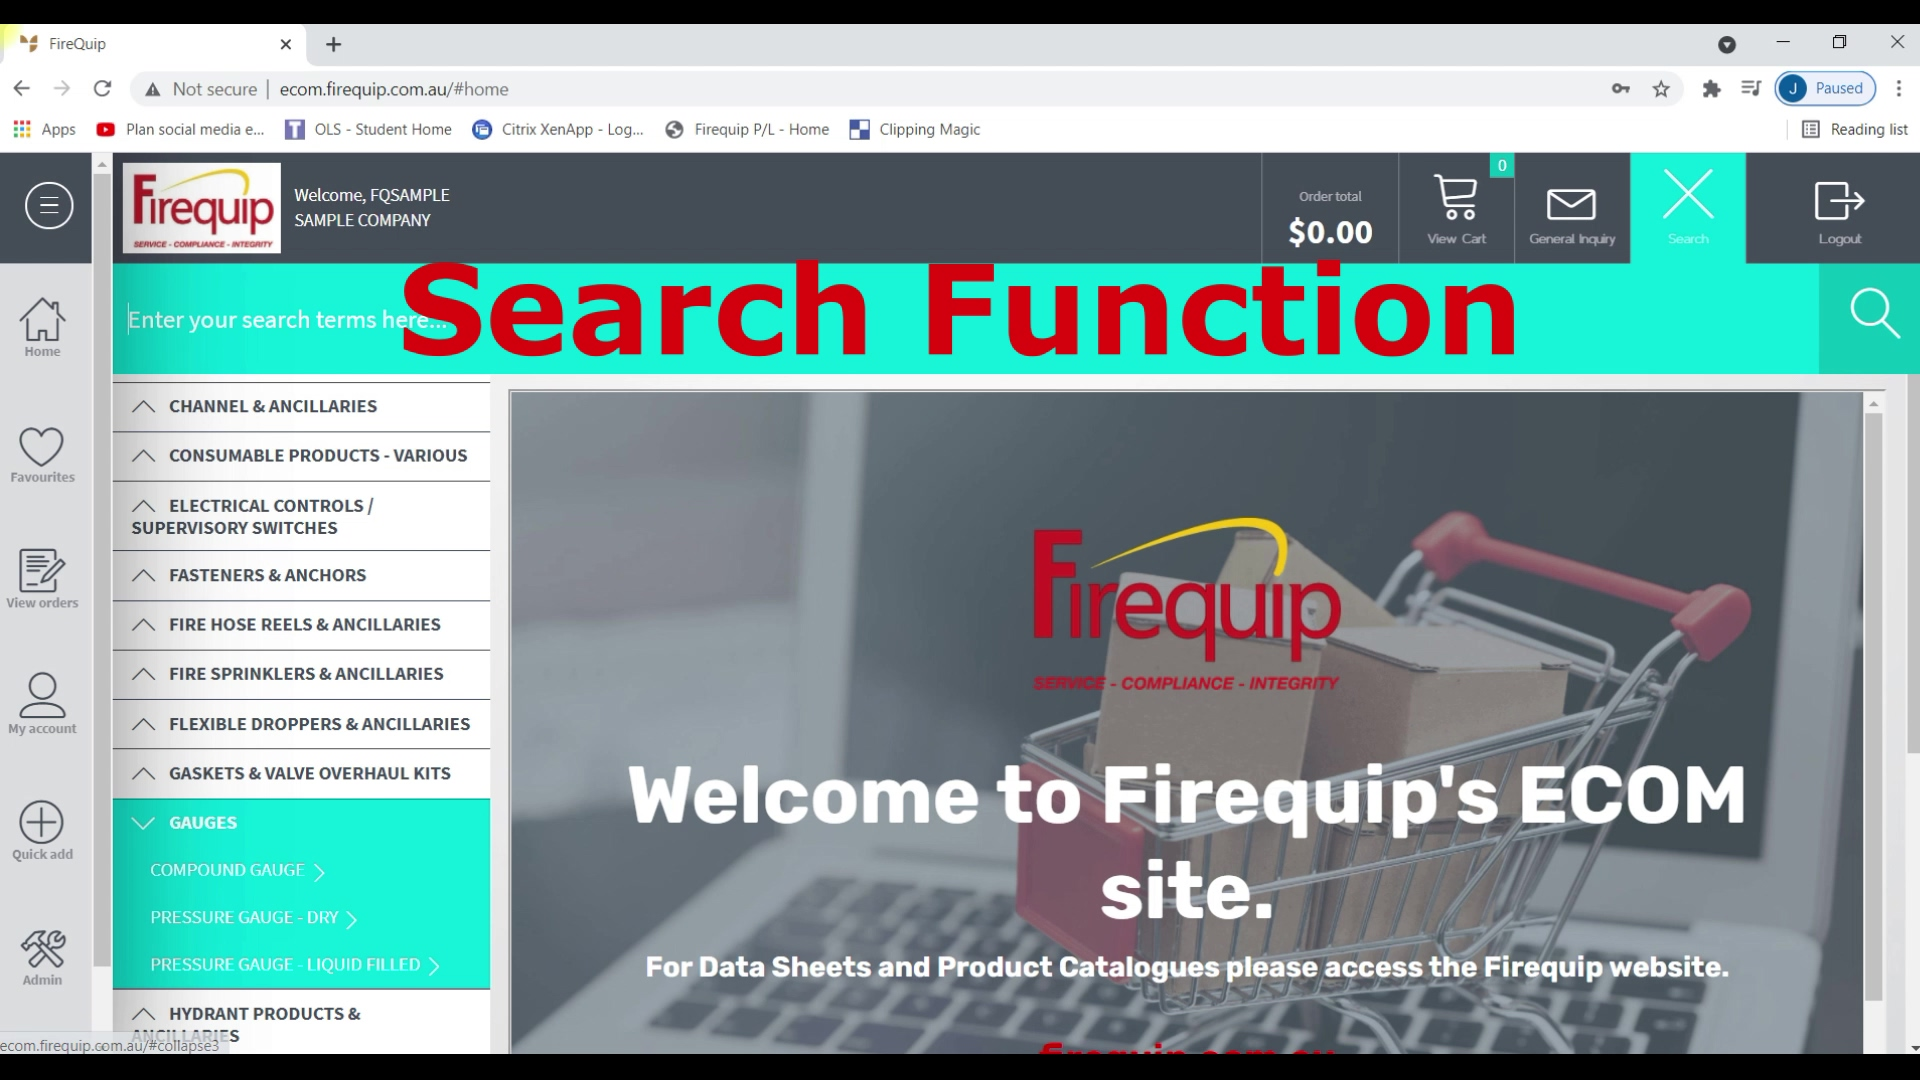 Ecom - Search and product info-1